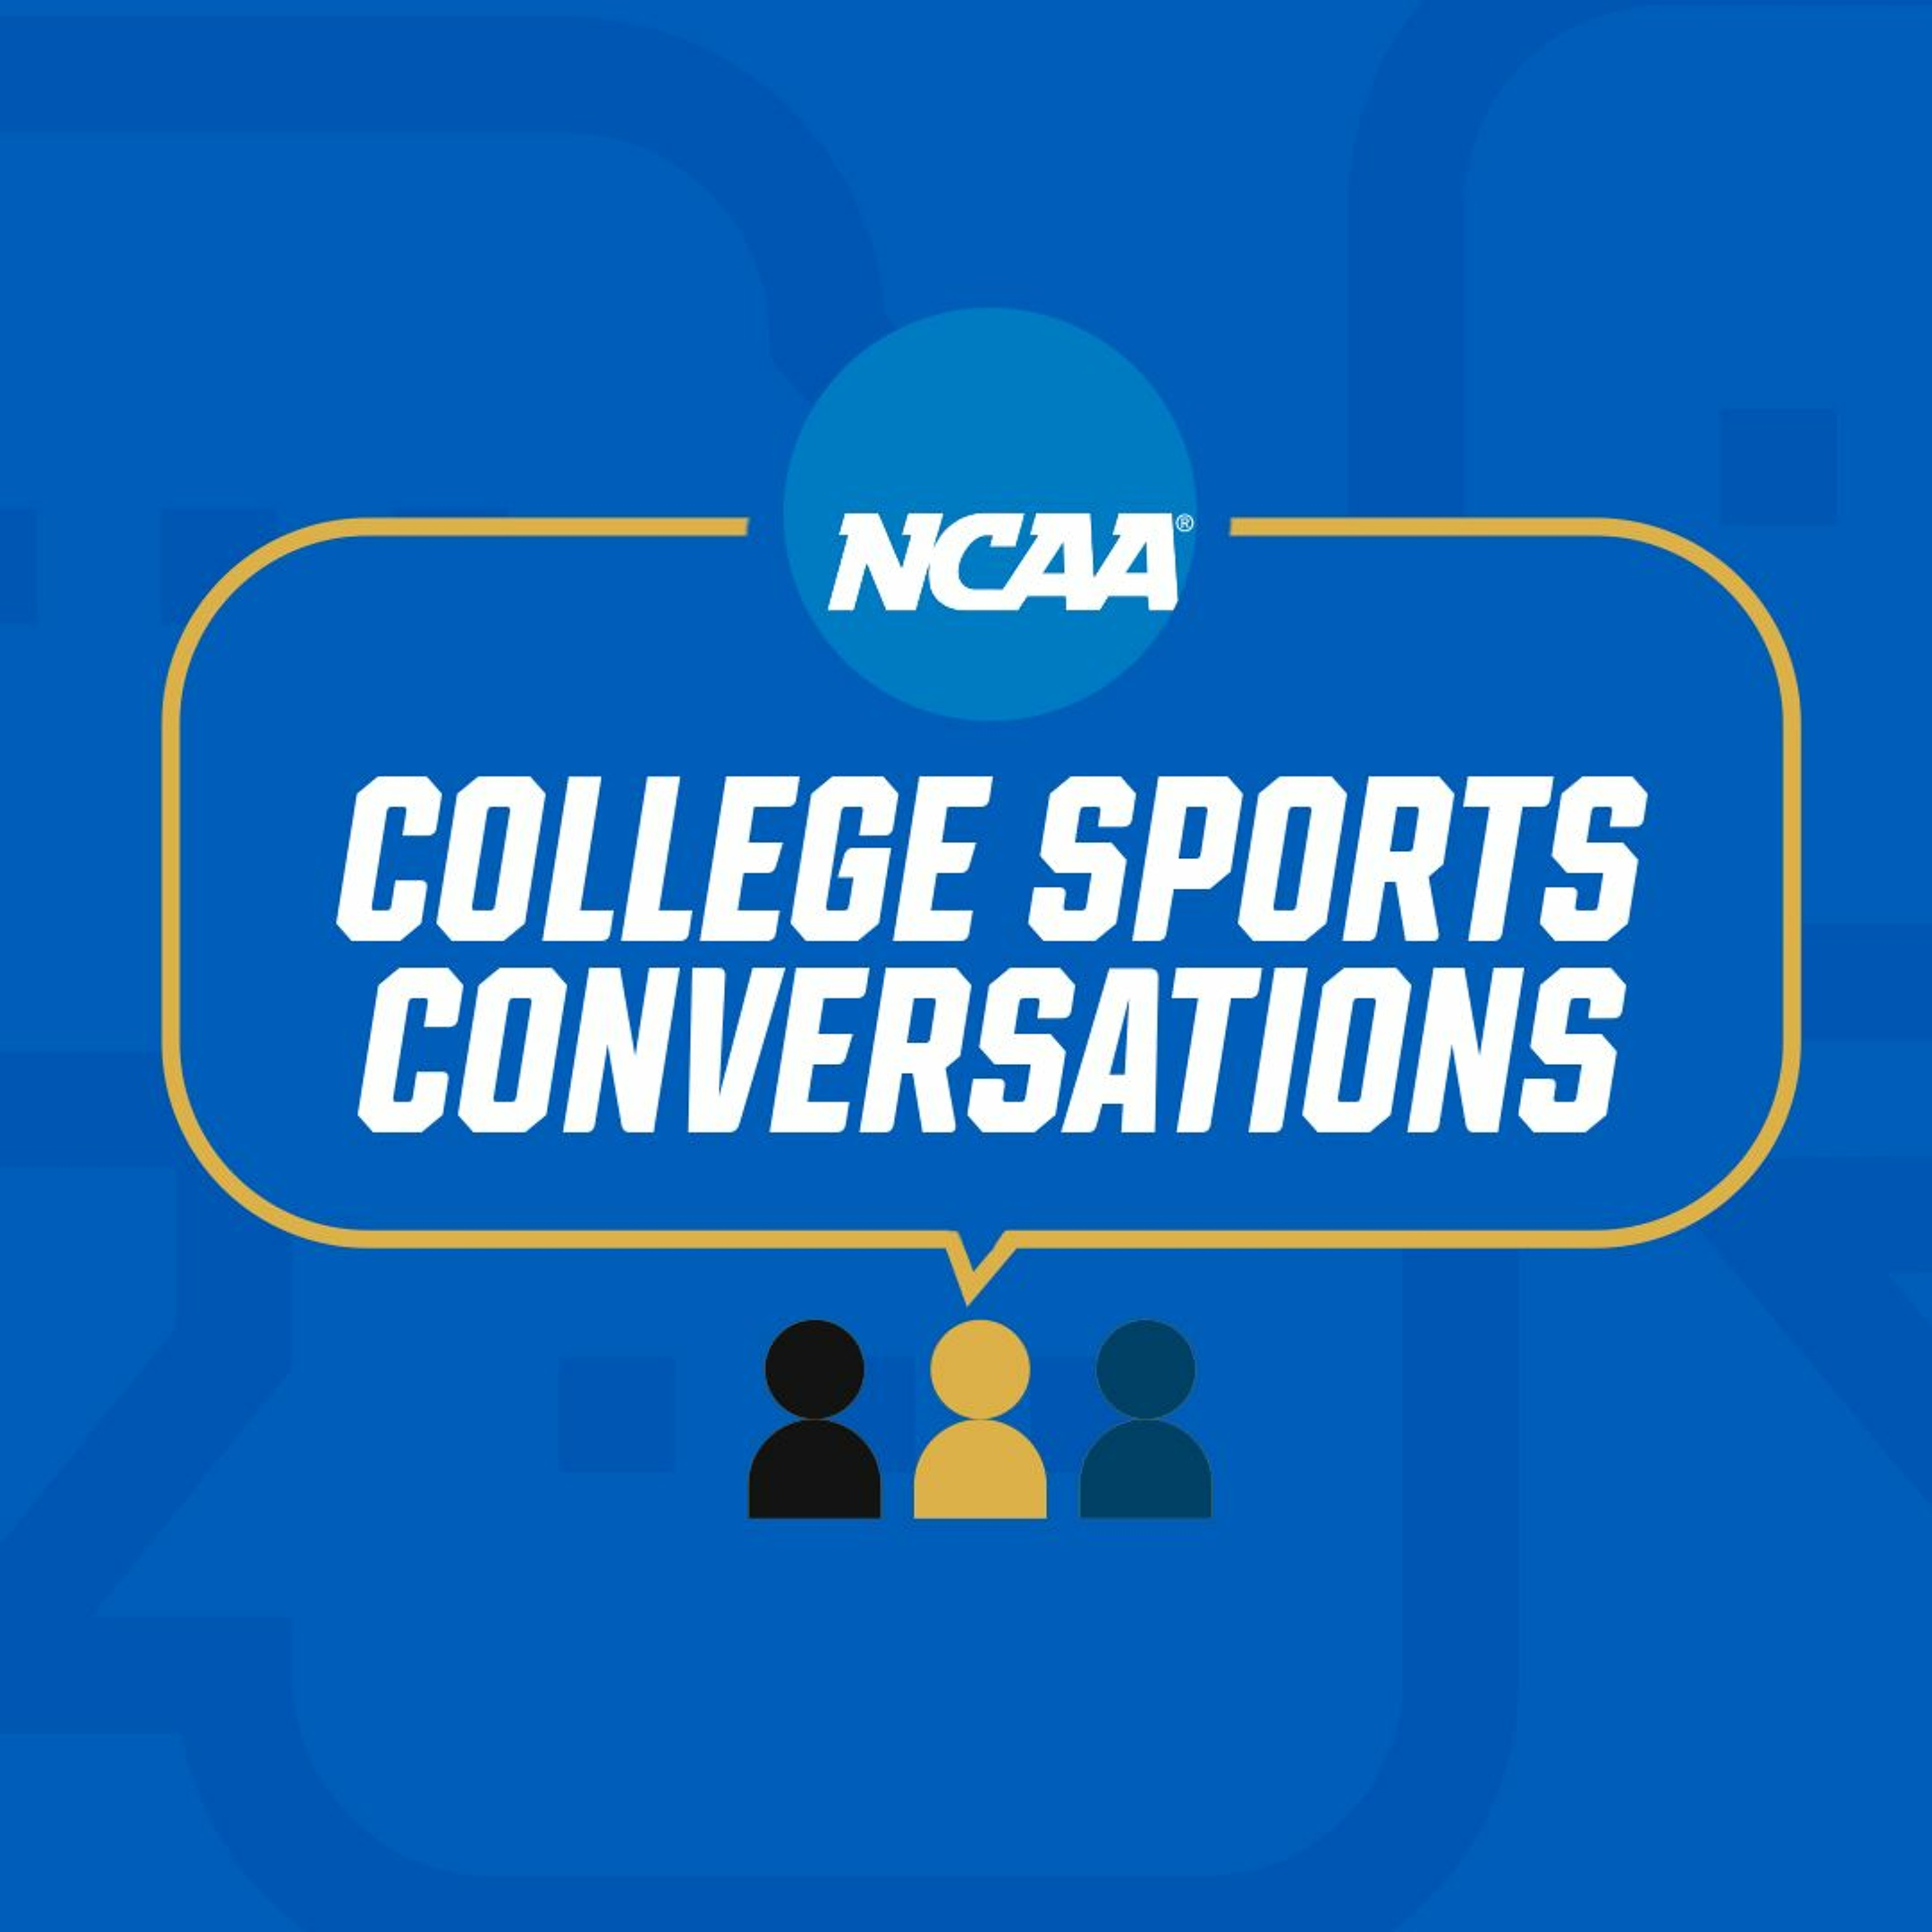 COLLEGE SPORTS CONVERSATIONS: Pride Month - Kena Gilmour talks with Kayla Gagnon